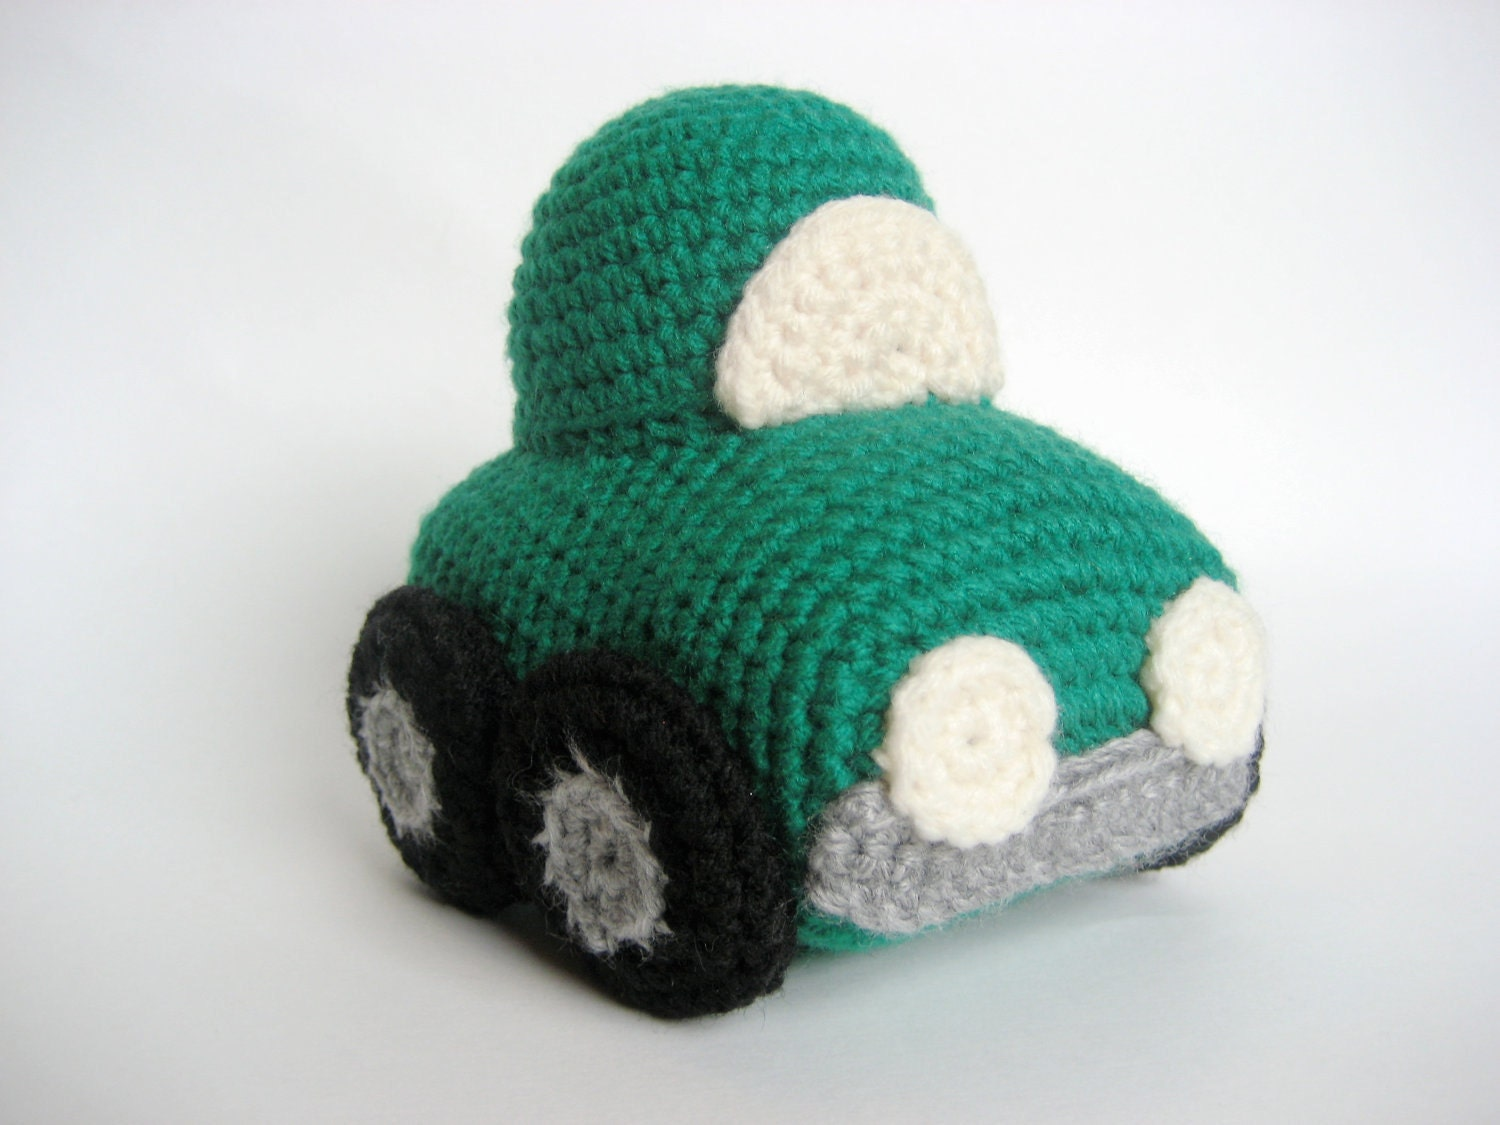 Crochet Toys : Crochet Car Toy Pattern by MsPremiseConclusion on Etsy